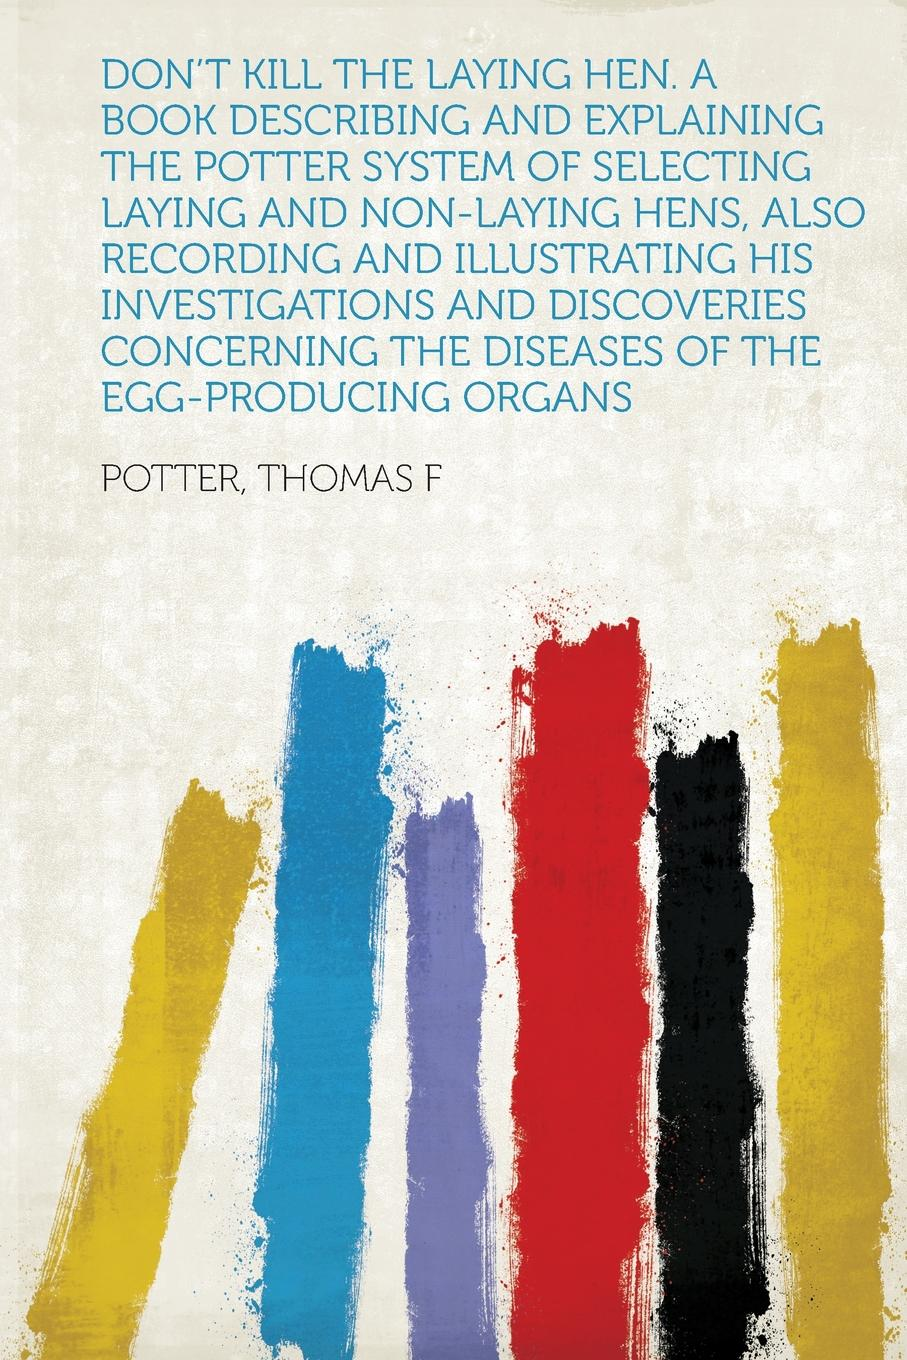 Don.t Kill the Laying Hen. A Book Describing and Explaining the Potter System of Selecting Laying and Non-Laying Hens, Also Recording and Illustrating His Investigations and Discoveries Concerning the Diseases of the Egg-Producing Organs productivity and egg quality in commercial brown laying hens